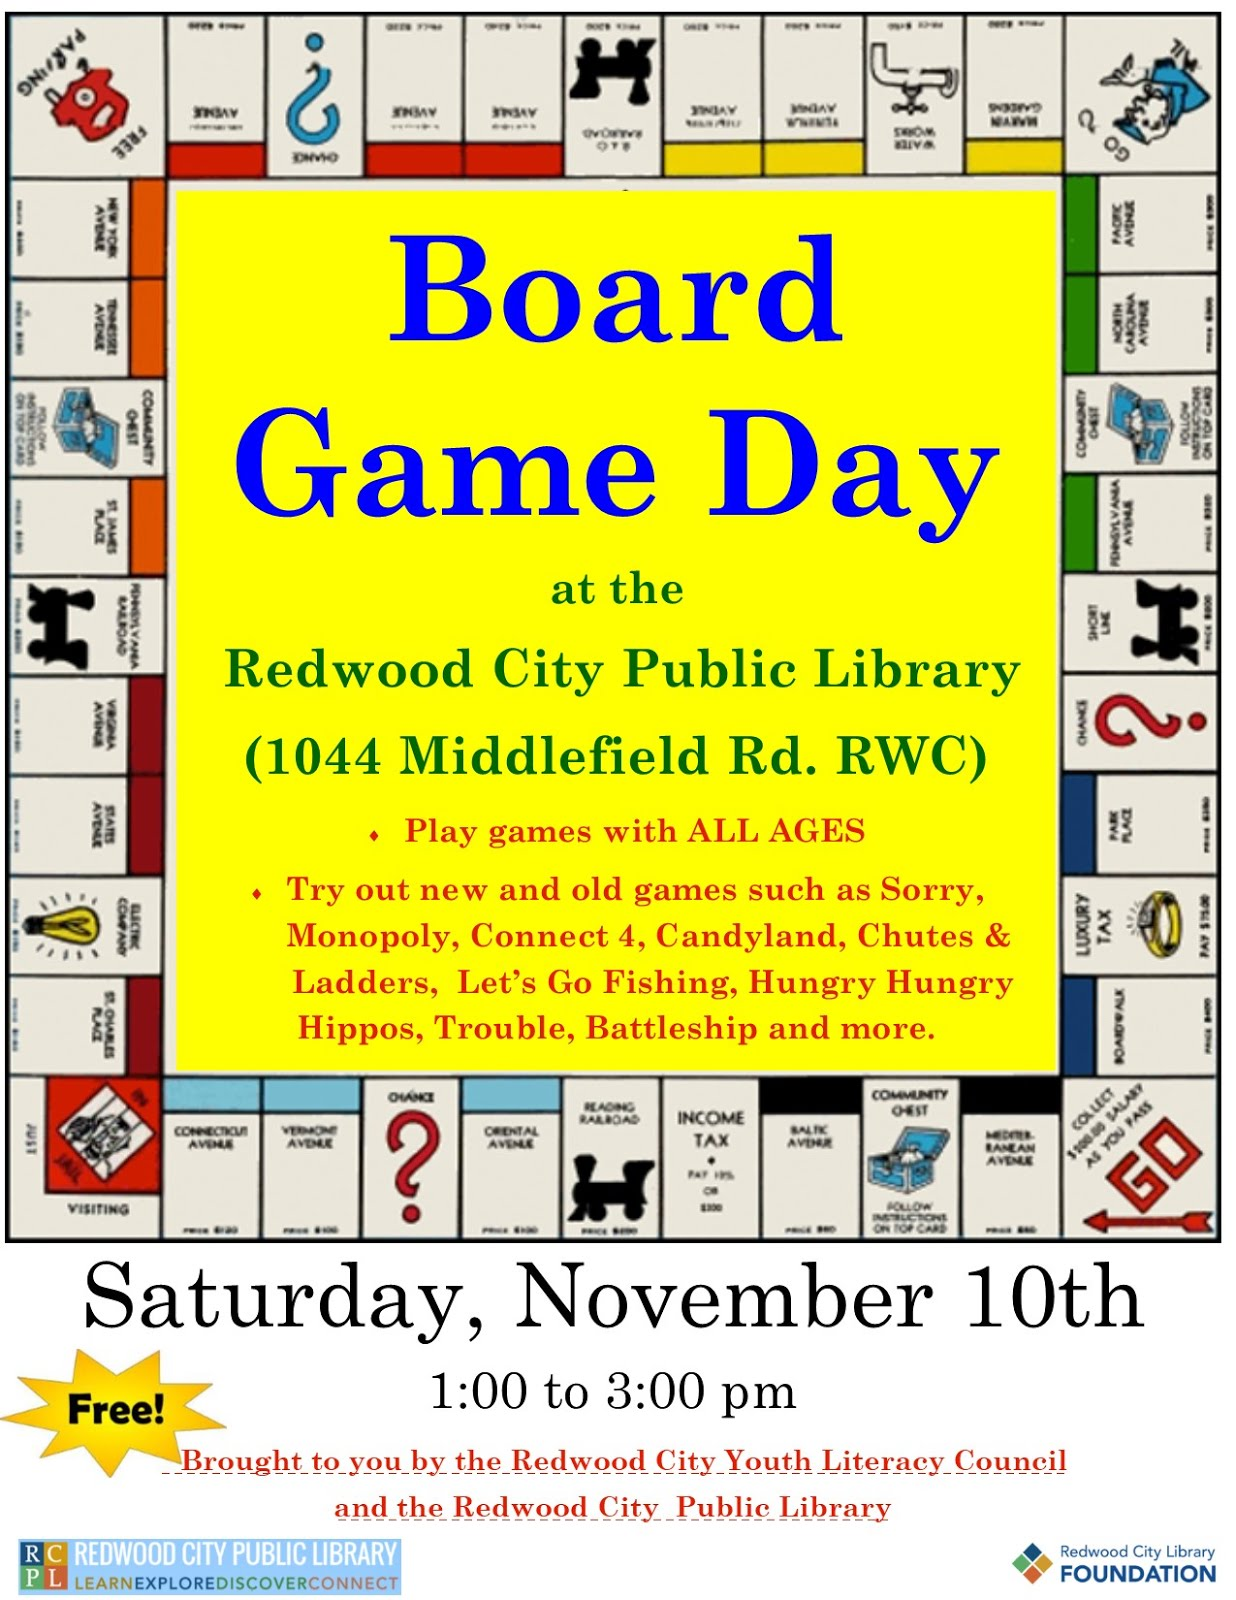 Free Family Board Game Day at the Library this Saturday